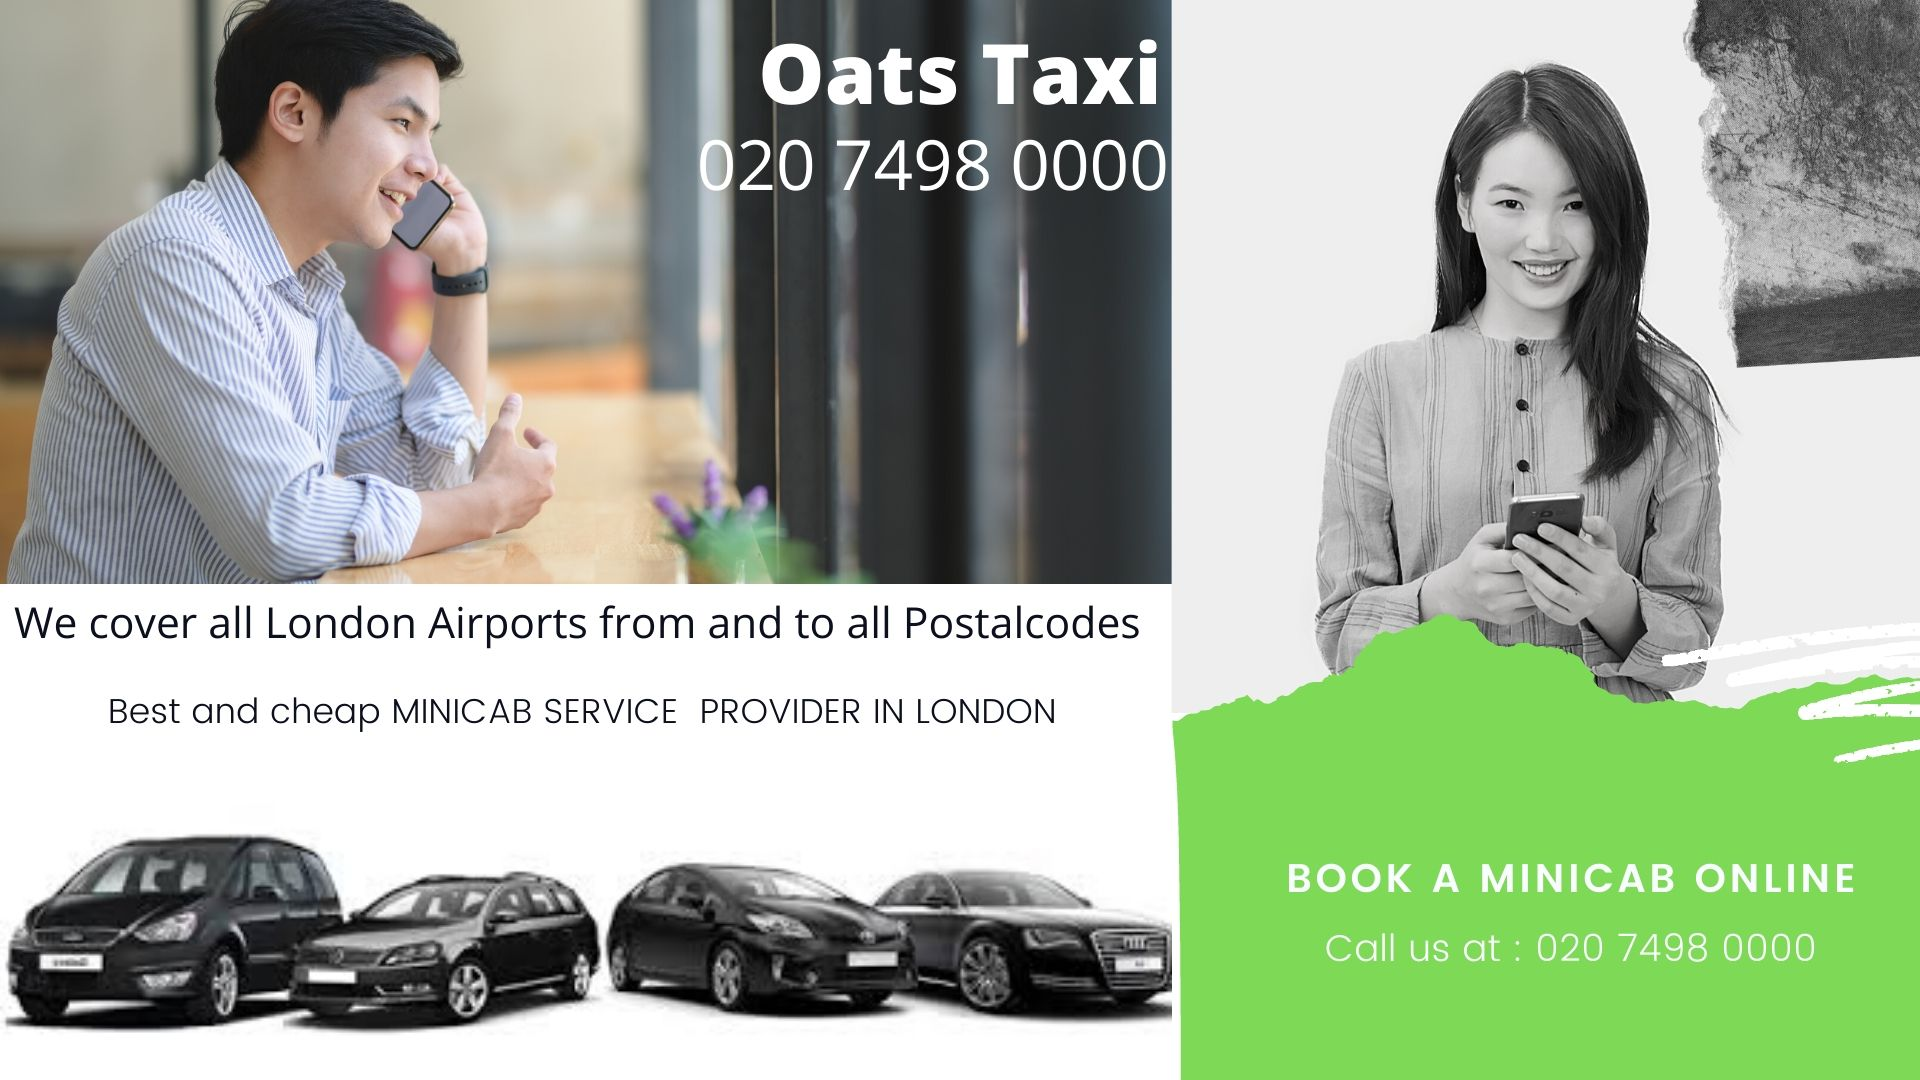 Nearest Taxi Office in Charing Cross | Nearest Taxi Office in Gatwick Airport | Call now : 02074980000